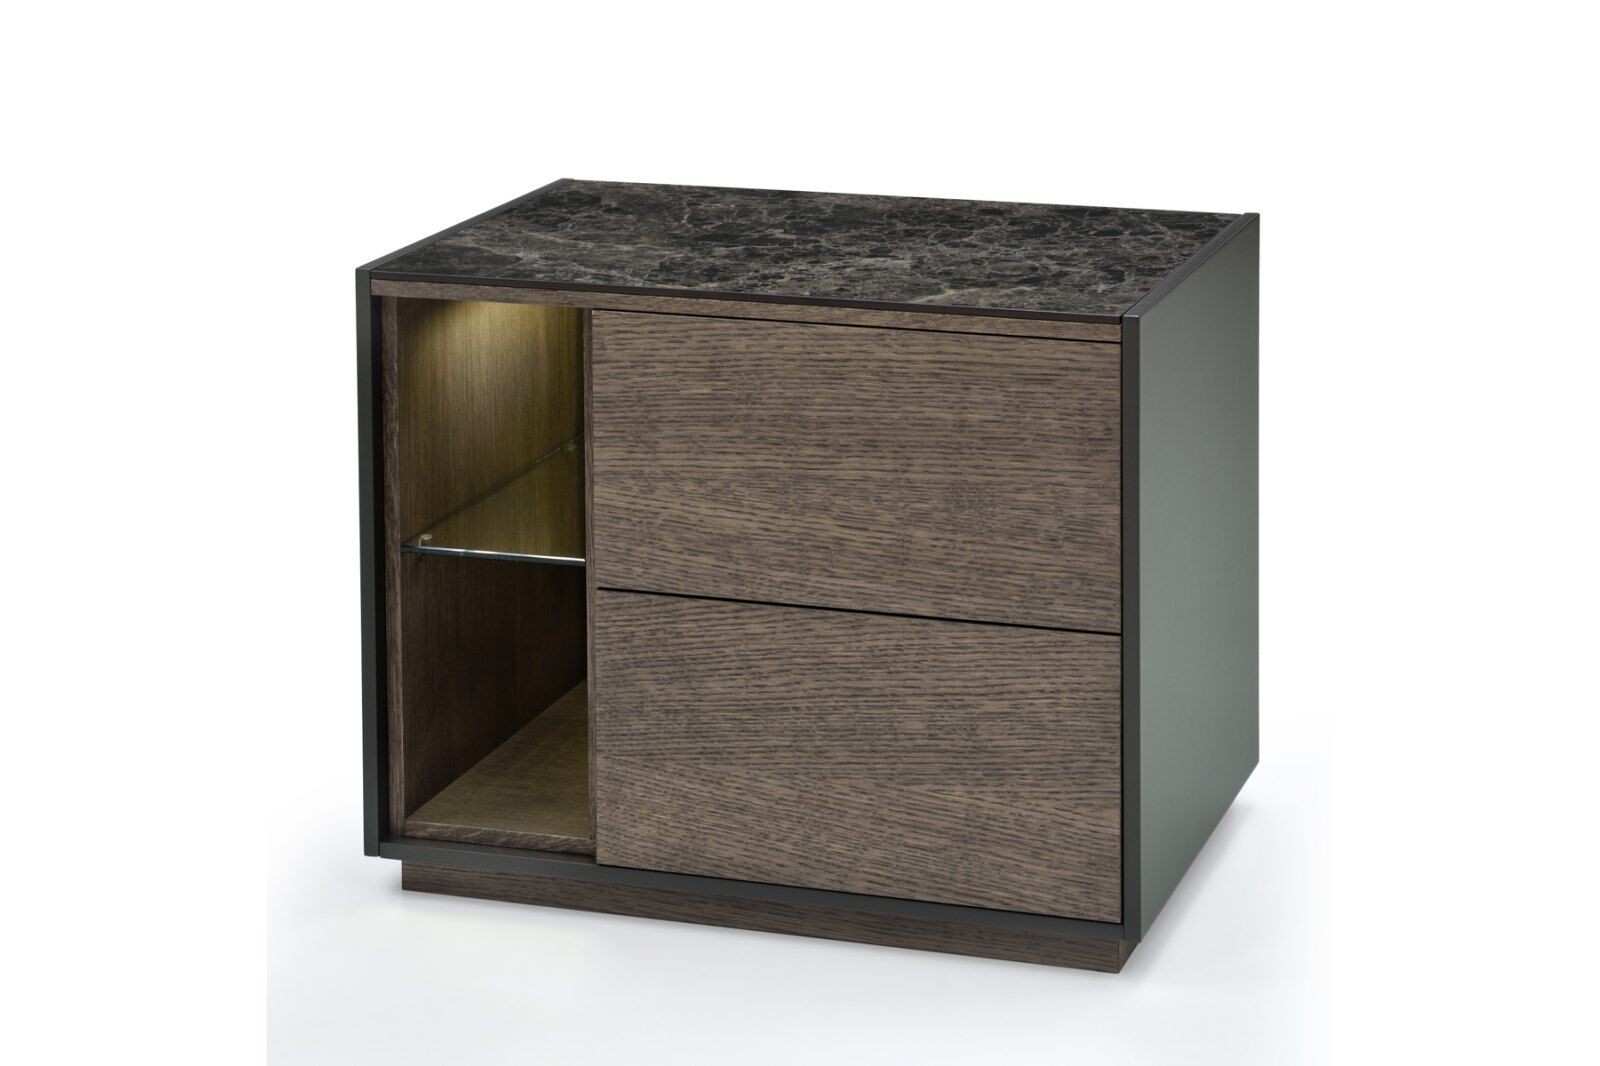 Tosca Marble-effect Top Bedside Table 50cm / 1